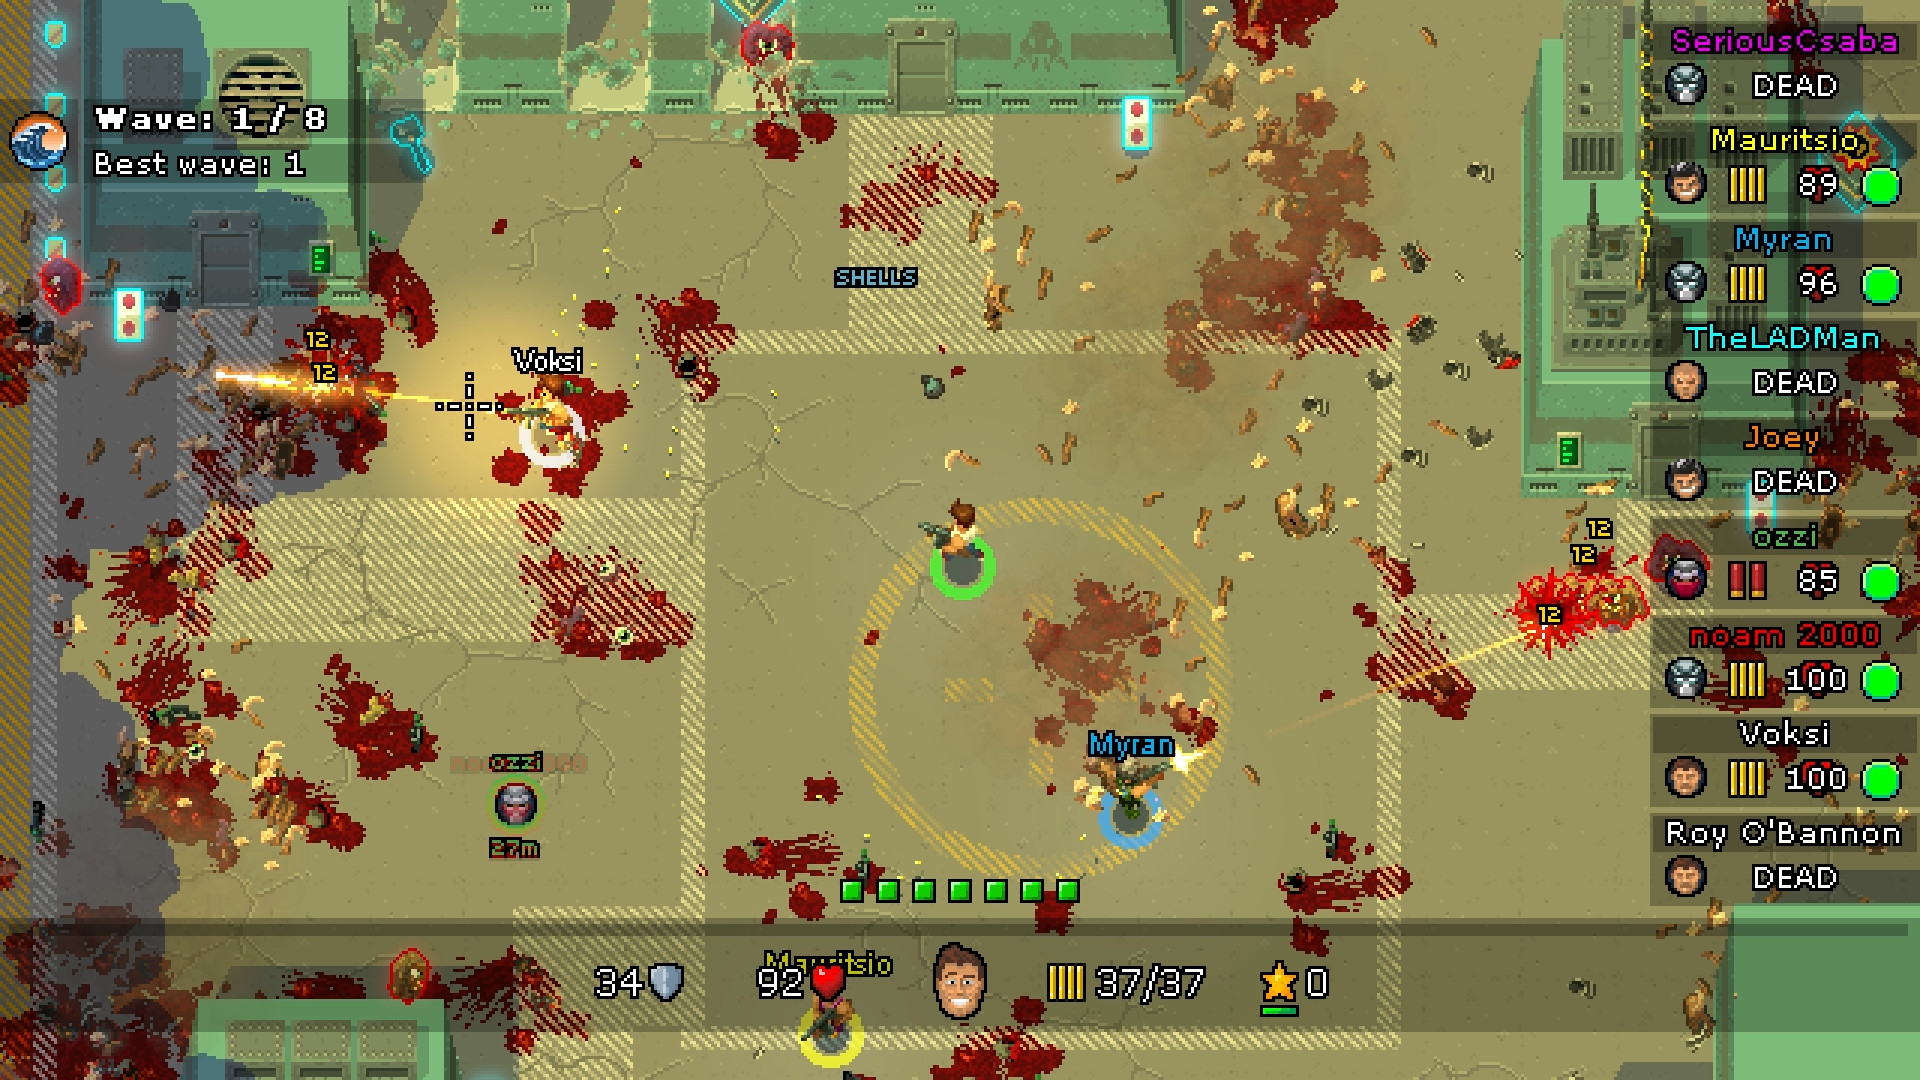 Voksi 'Pirates' New Serious Sam Game With Permission From